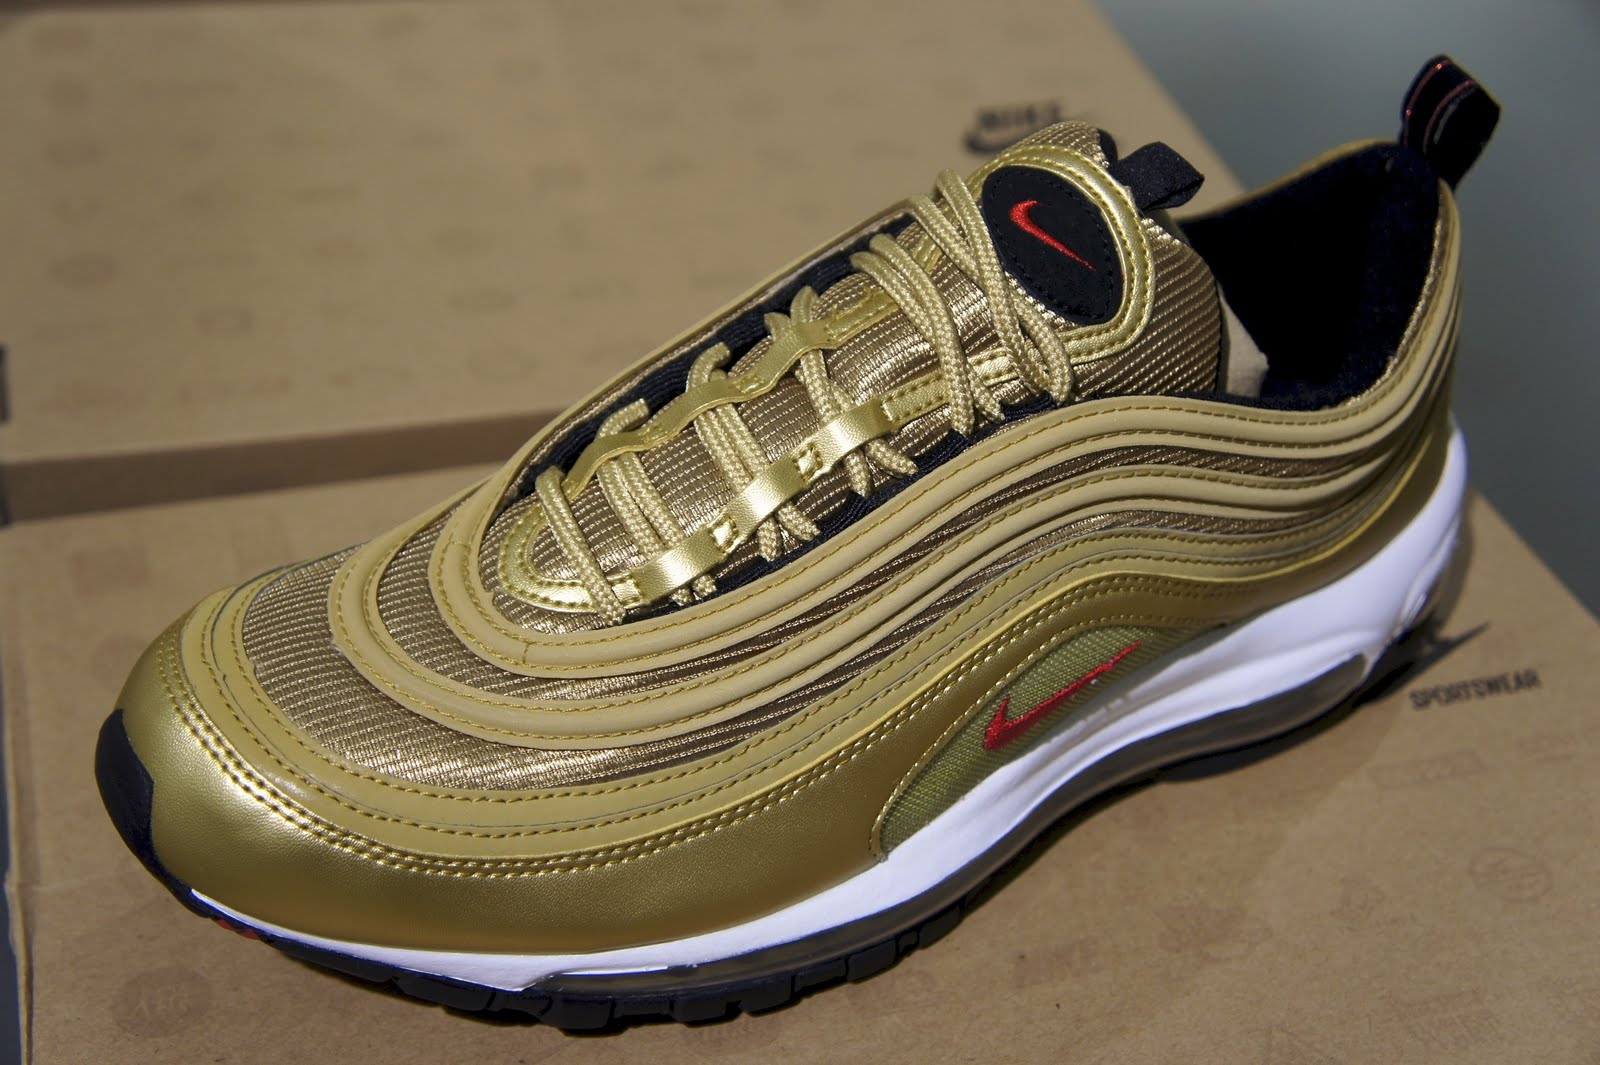 Nike Air Max 97 Gold | JELMOLI Exclusive